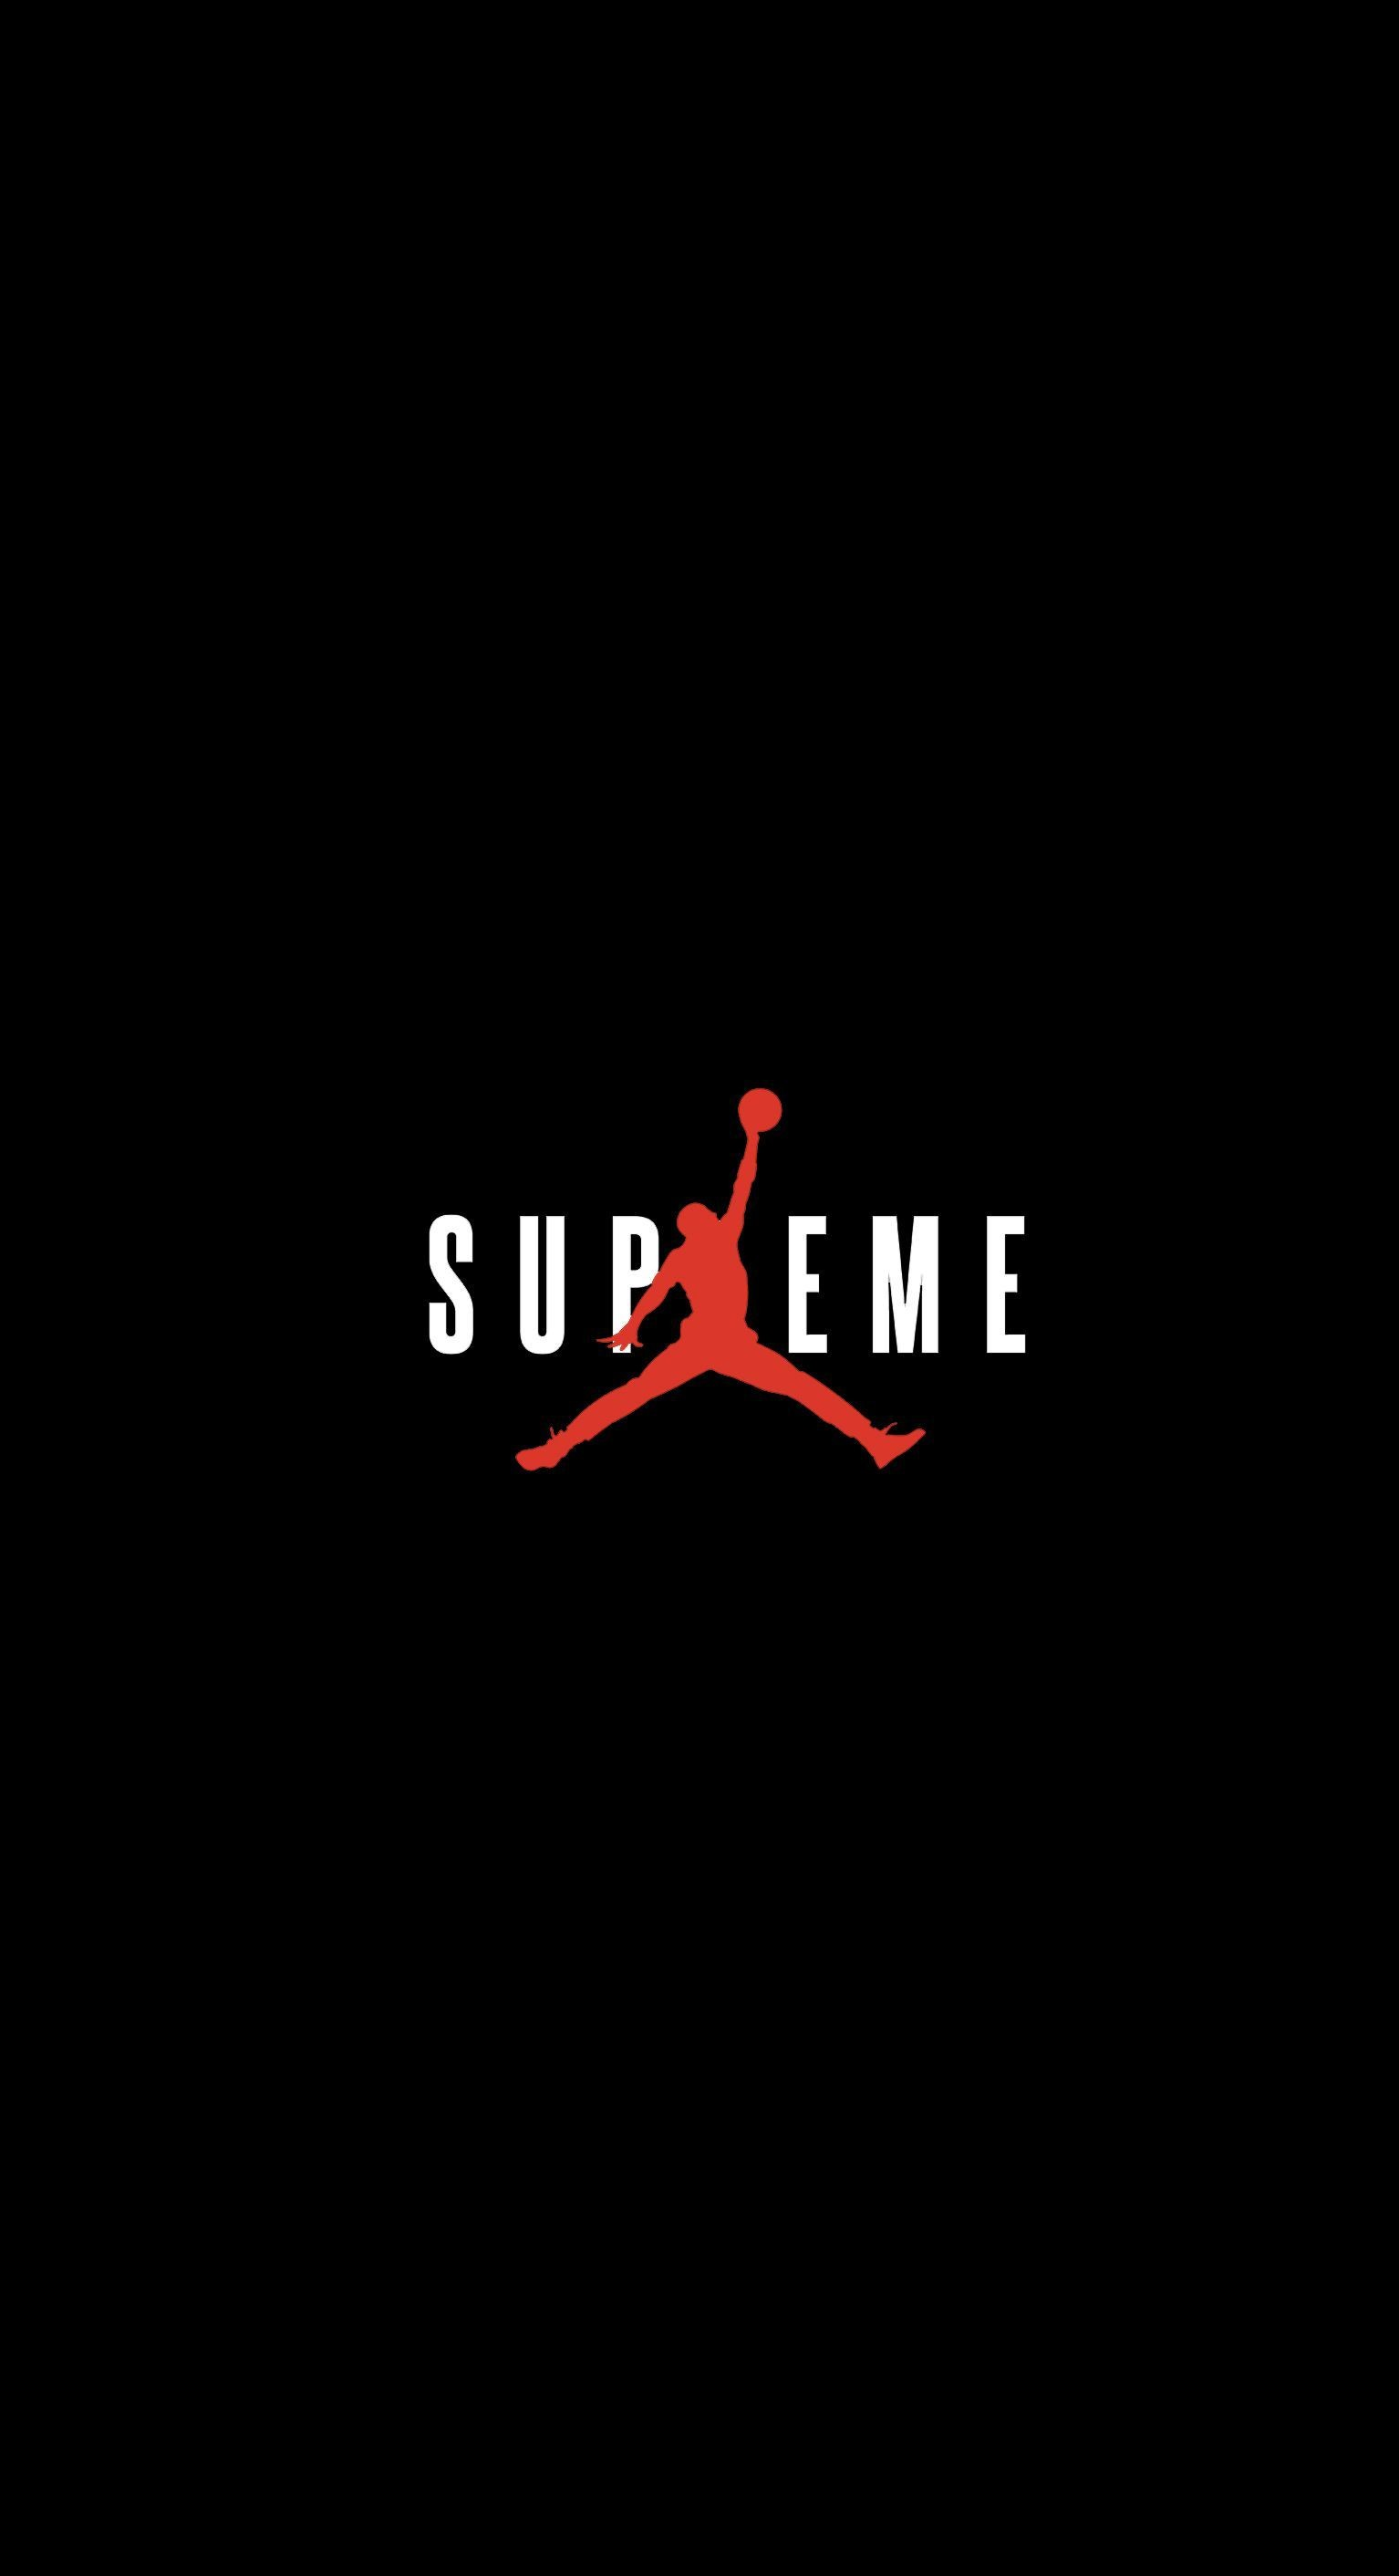 83 Supreme Wallpapers on WallpaperPlay 1534x2824